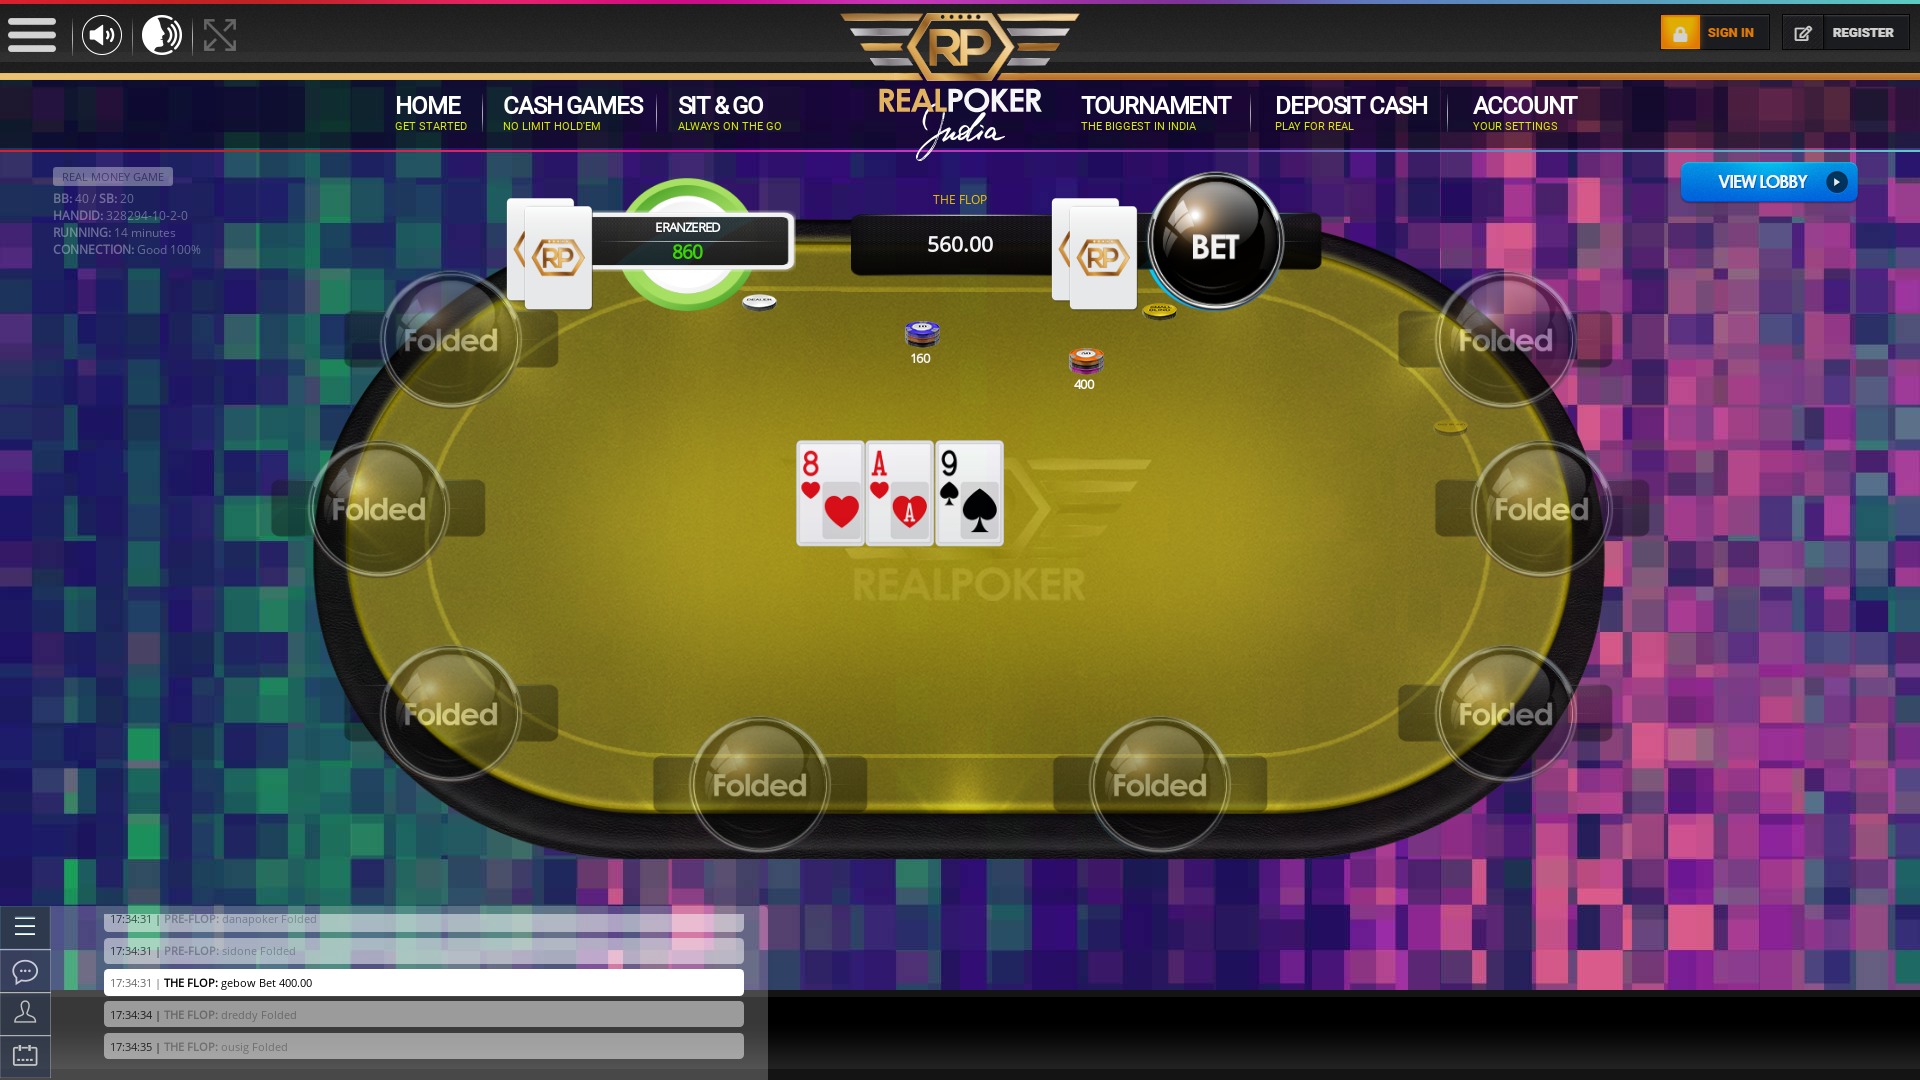 Ramamurthy Nagar, Bangalore Poker Website 10 Player